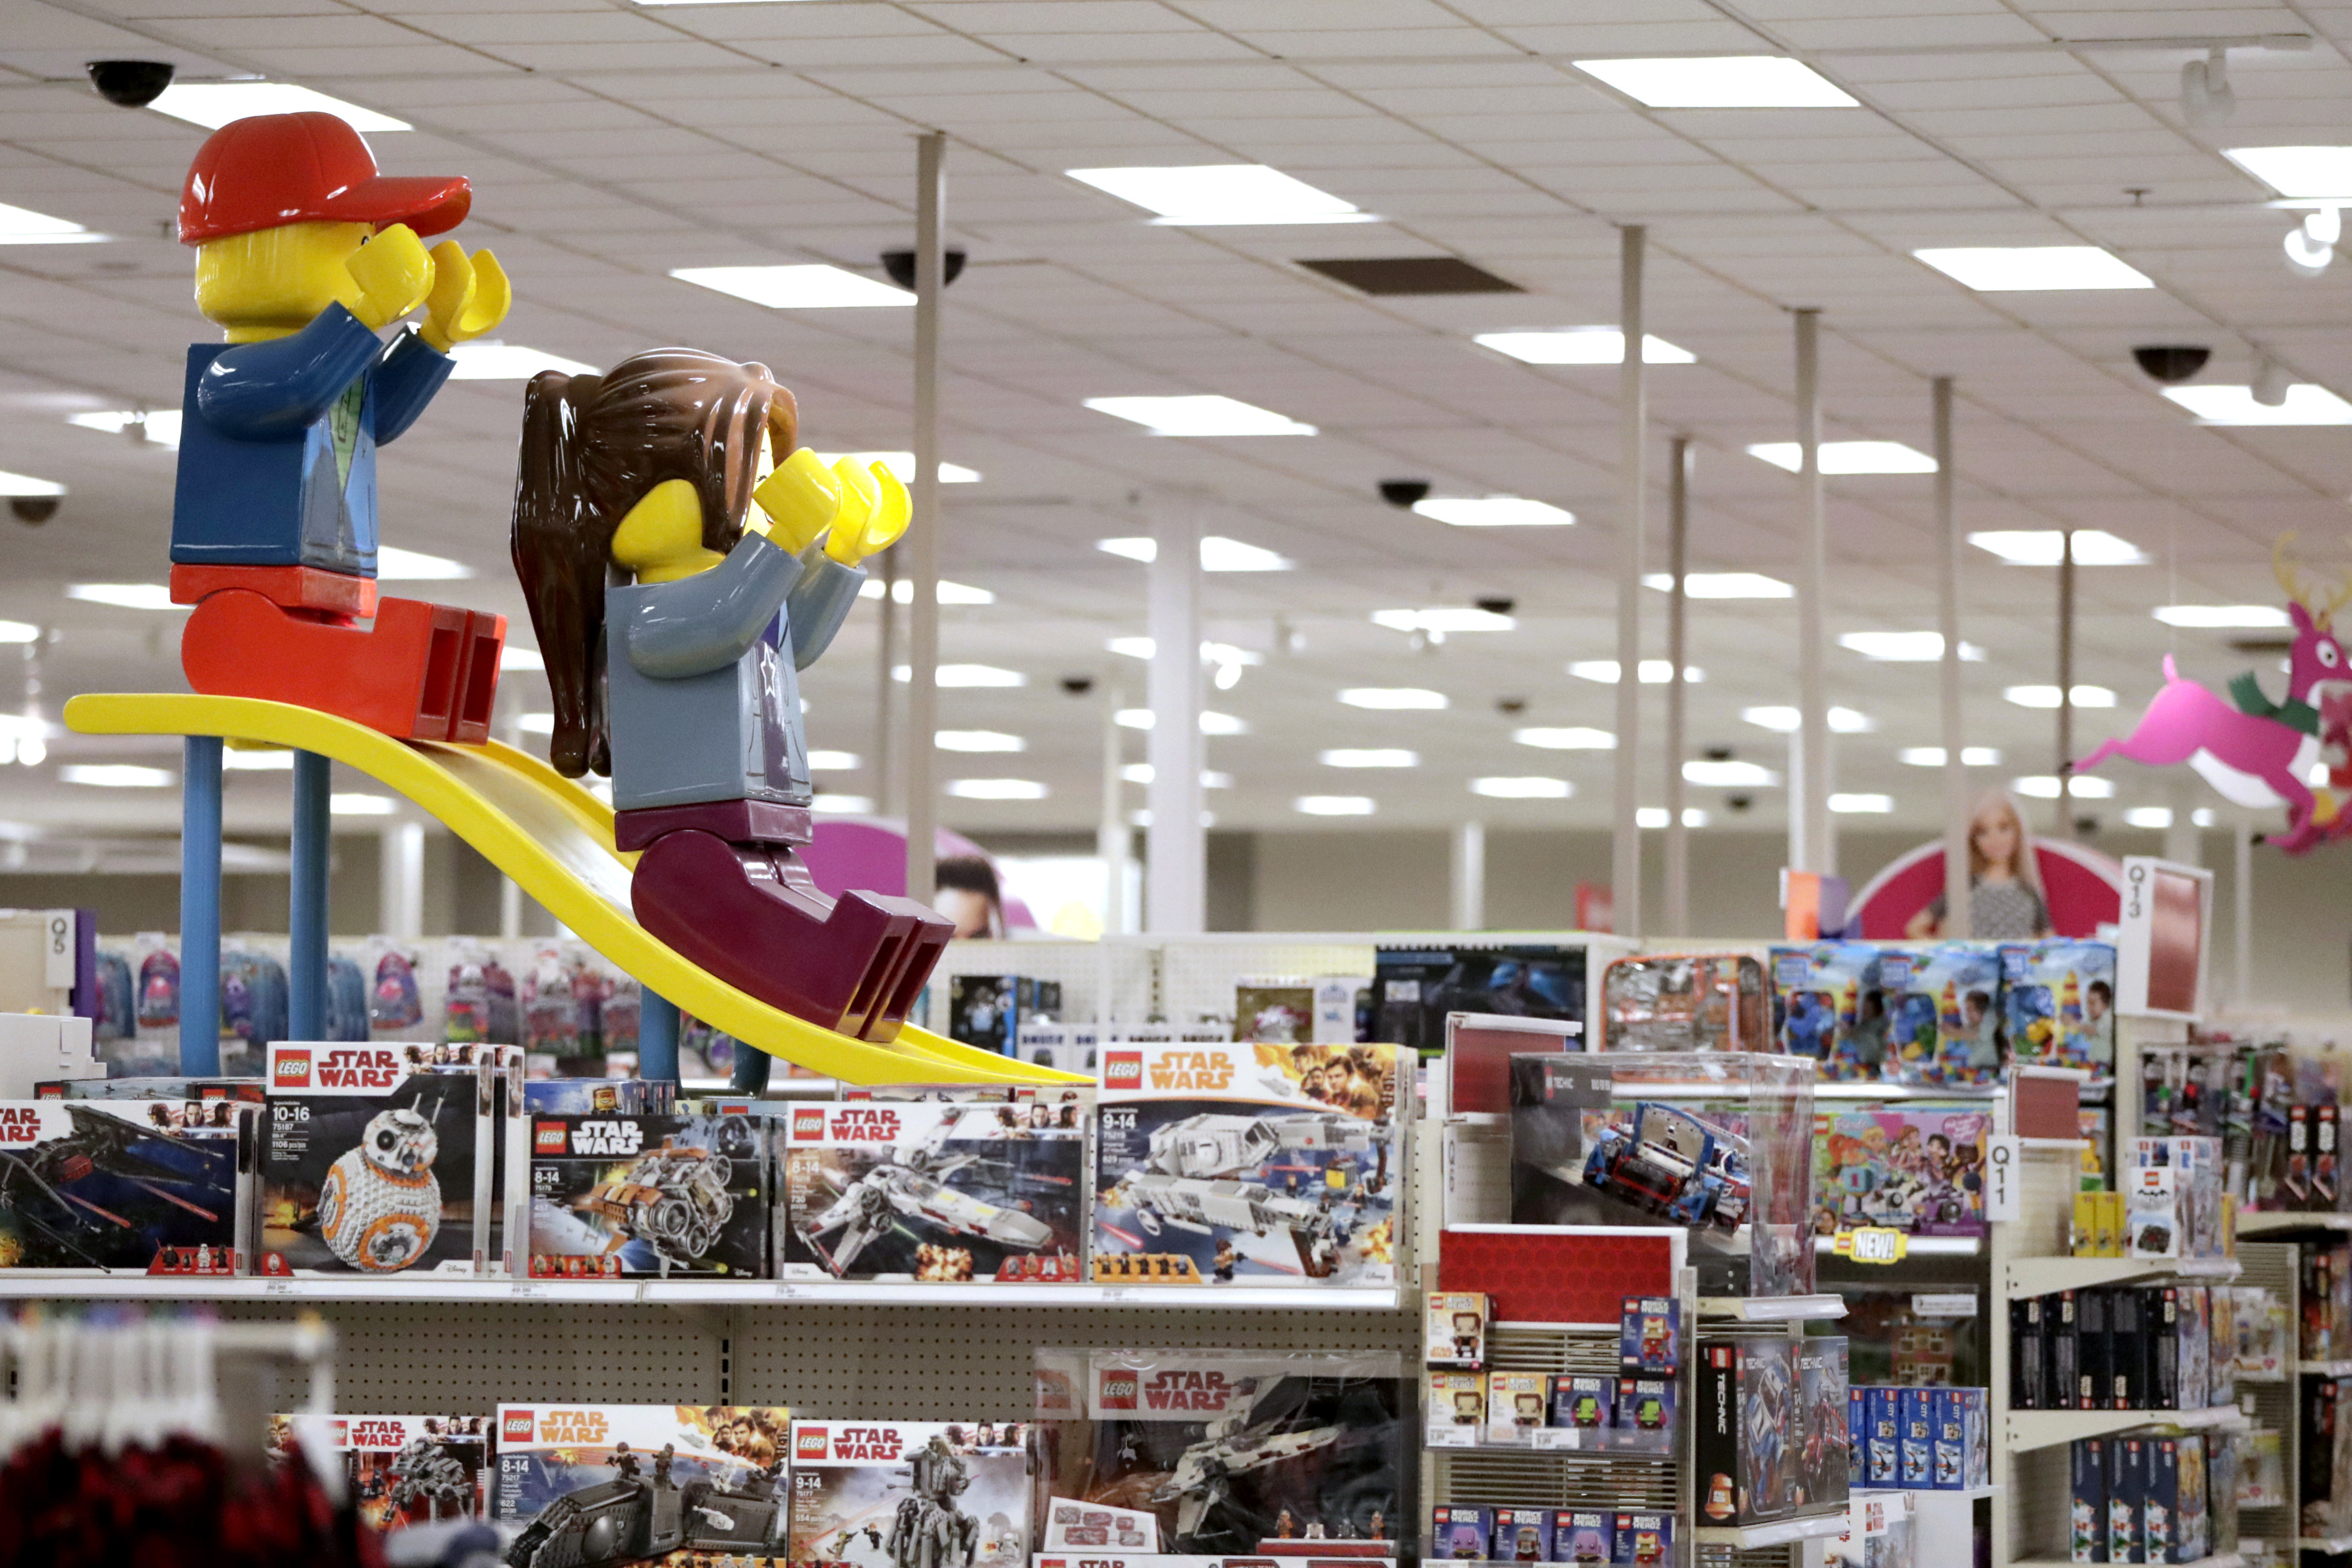 This 2018 photo shows a toy display inside a Target store in Bridgewater, New Jersey.